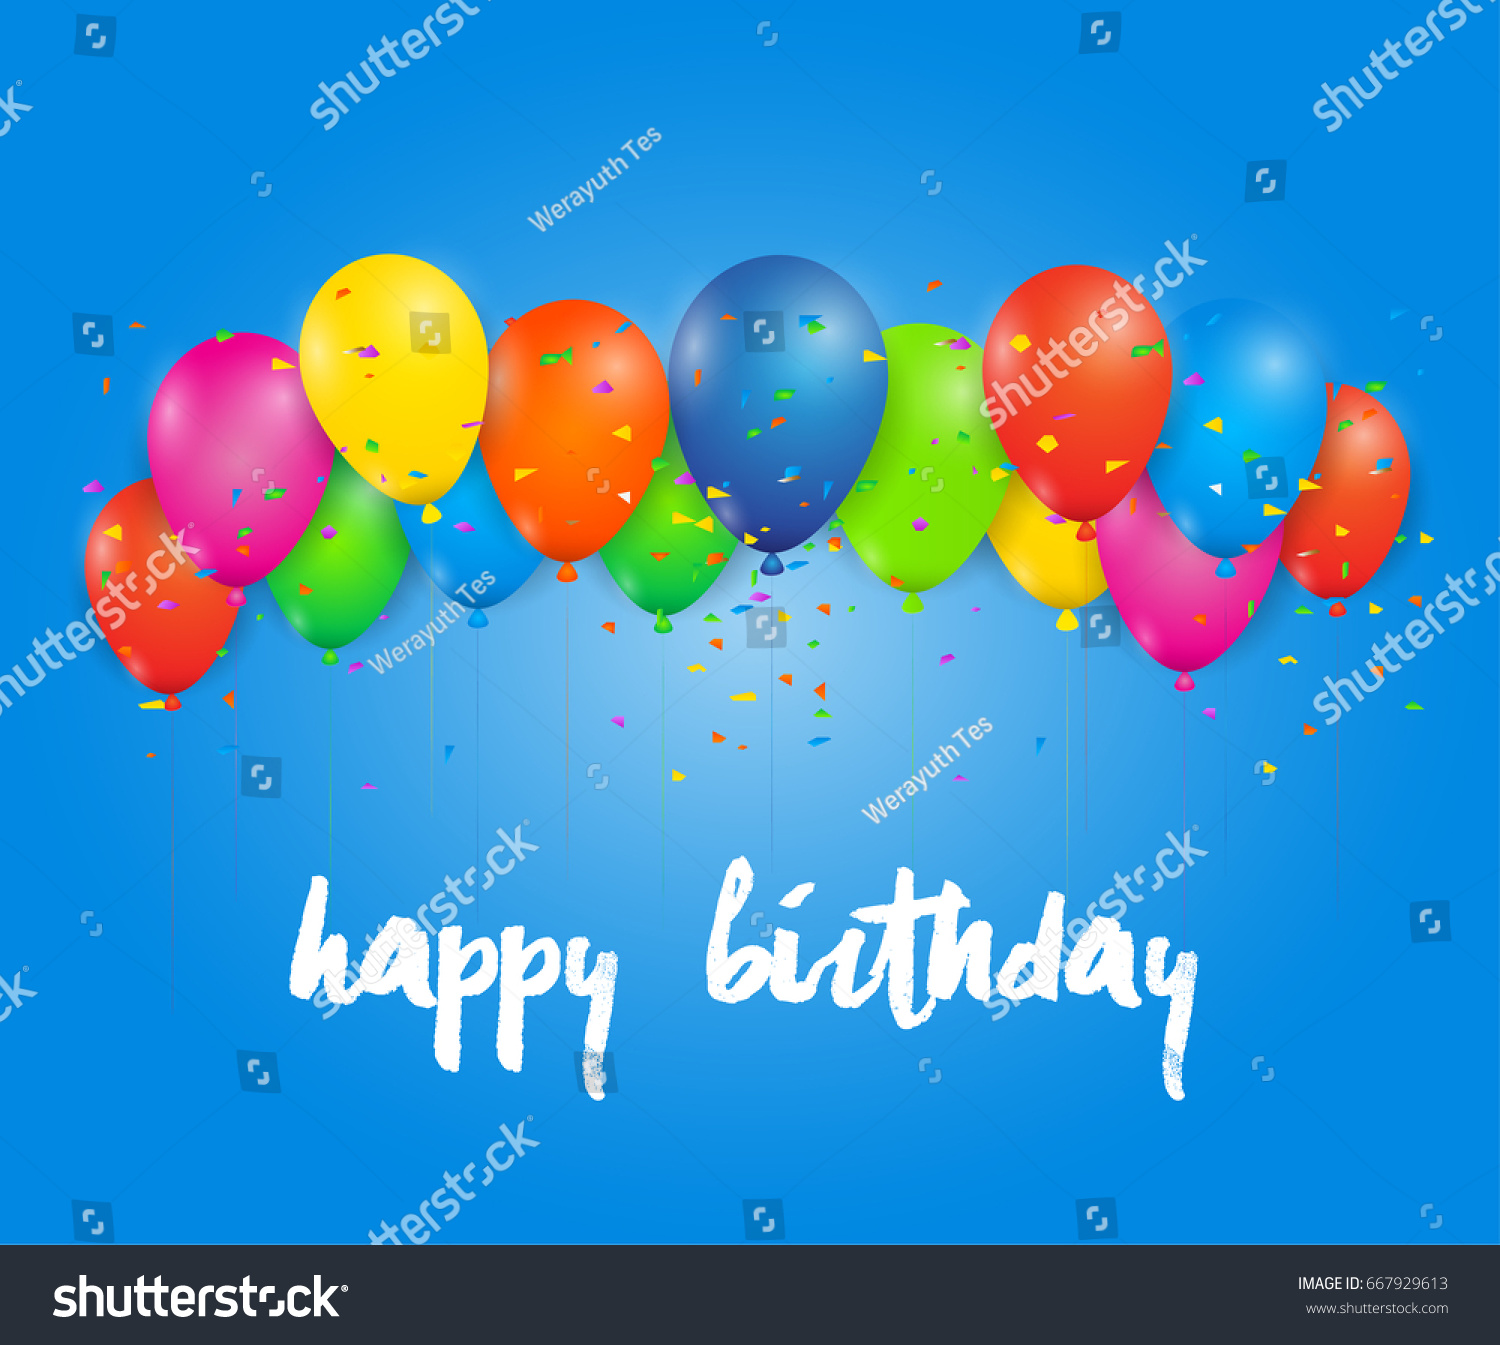 Happy birthday greeting card on background stock vector royalty happy birthday greeting card on background vector illustration design for greeting cards and poster with m4hsunfo